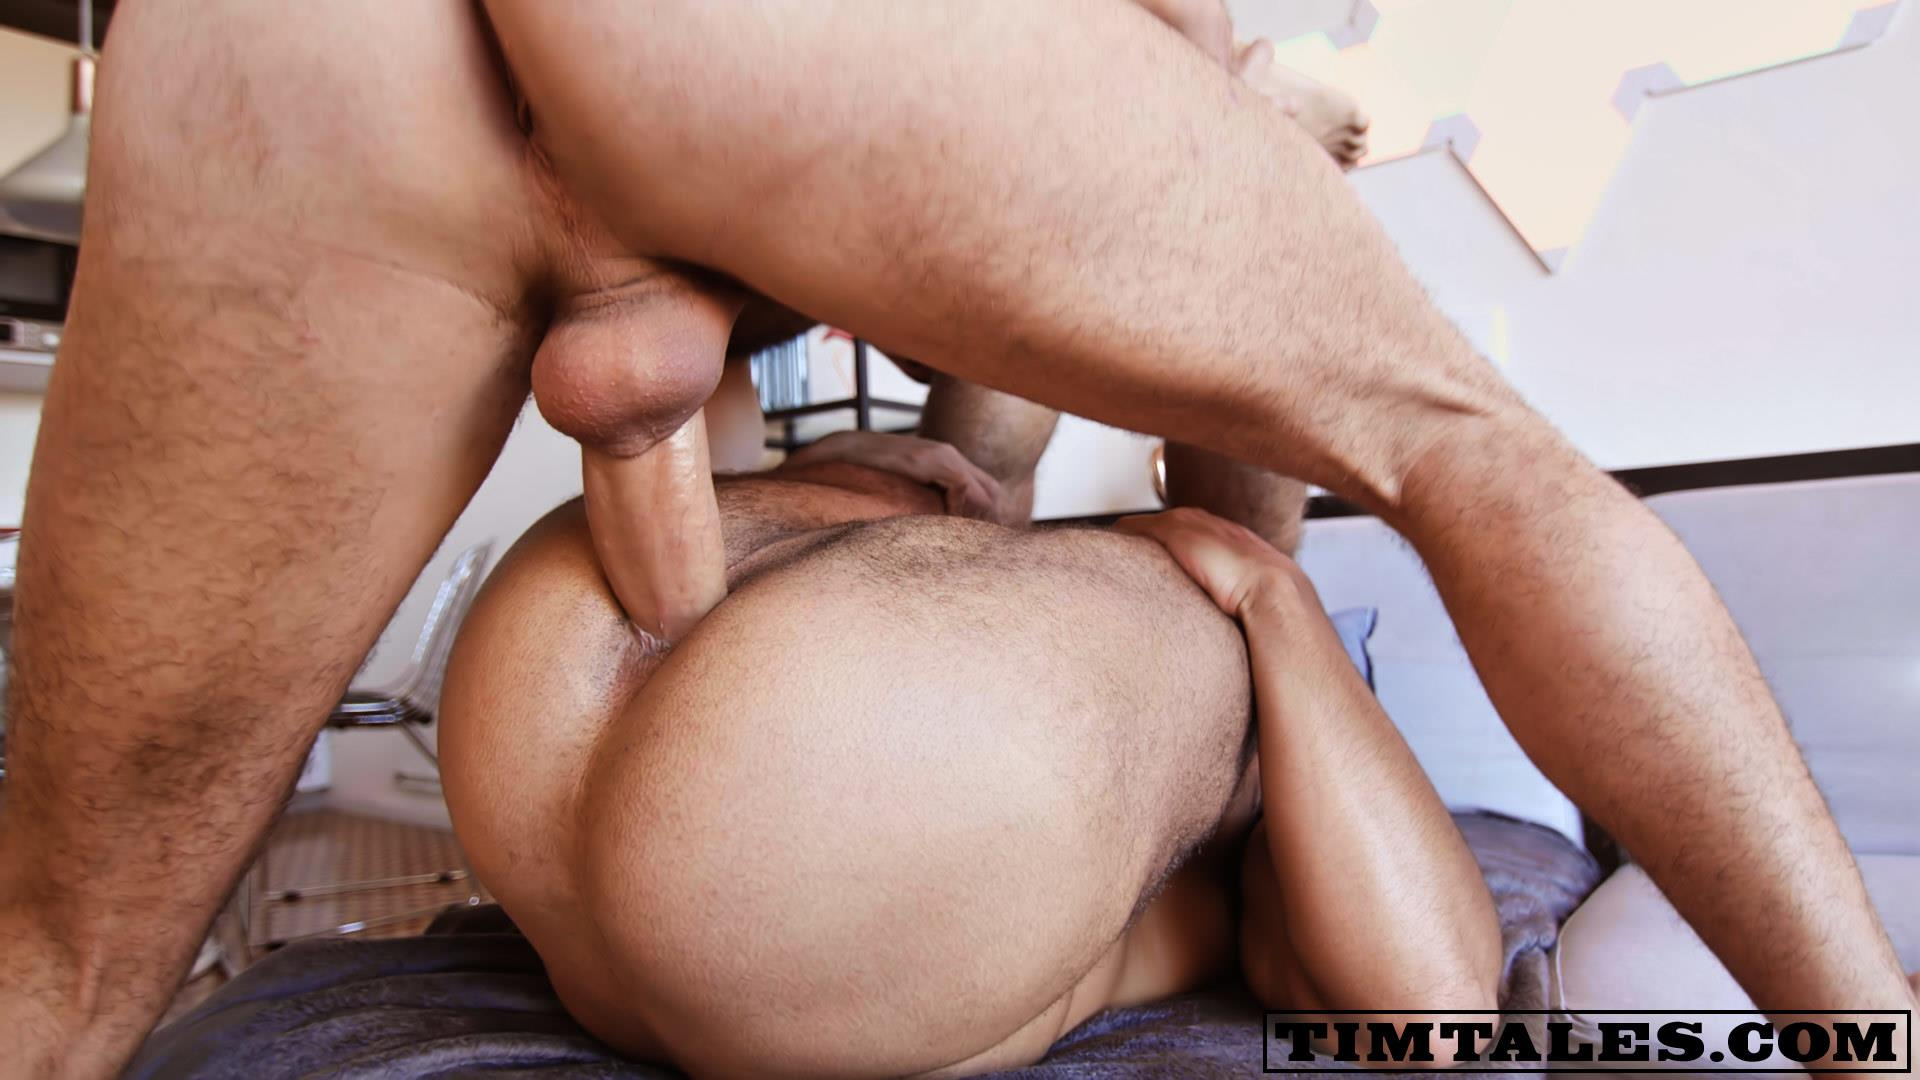 TimTales-Adam-Sahar-and-Louis-Ricaute-Hairy-Muscle-Bareback-Sex-Video-13 TimTales: Adam Sahar Breeding Hairy Muscle Bear Louis Ricaute With His Big Uncut Cock